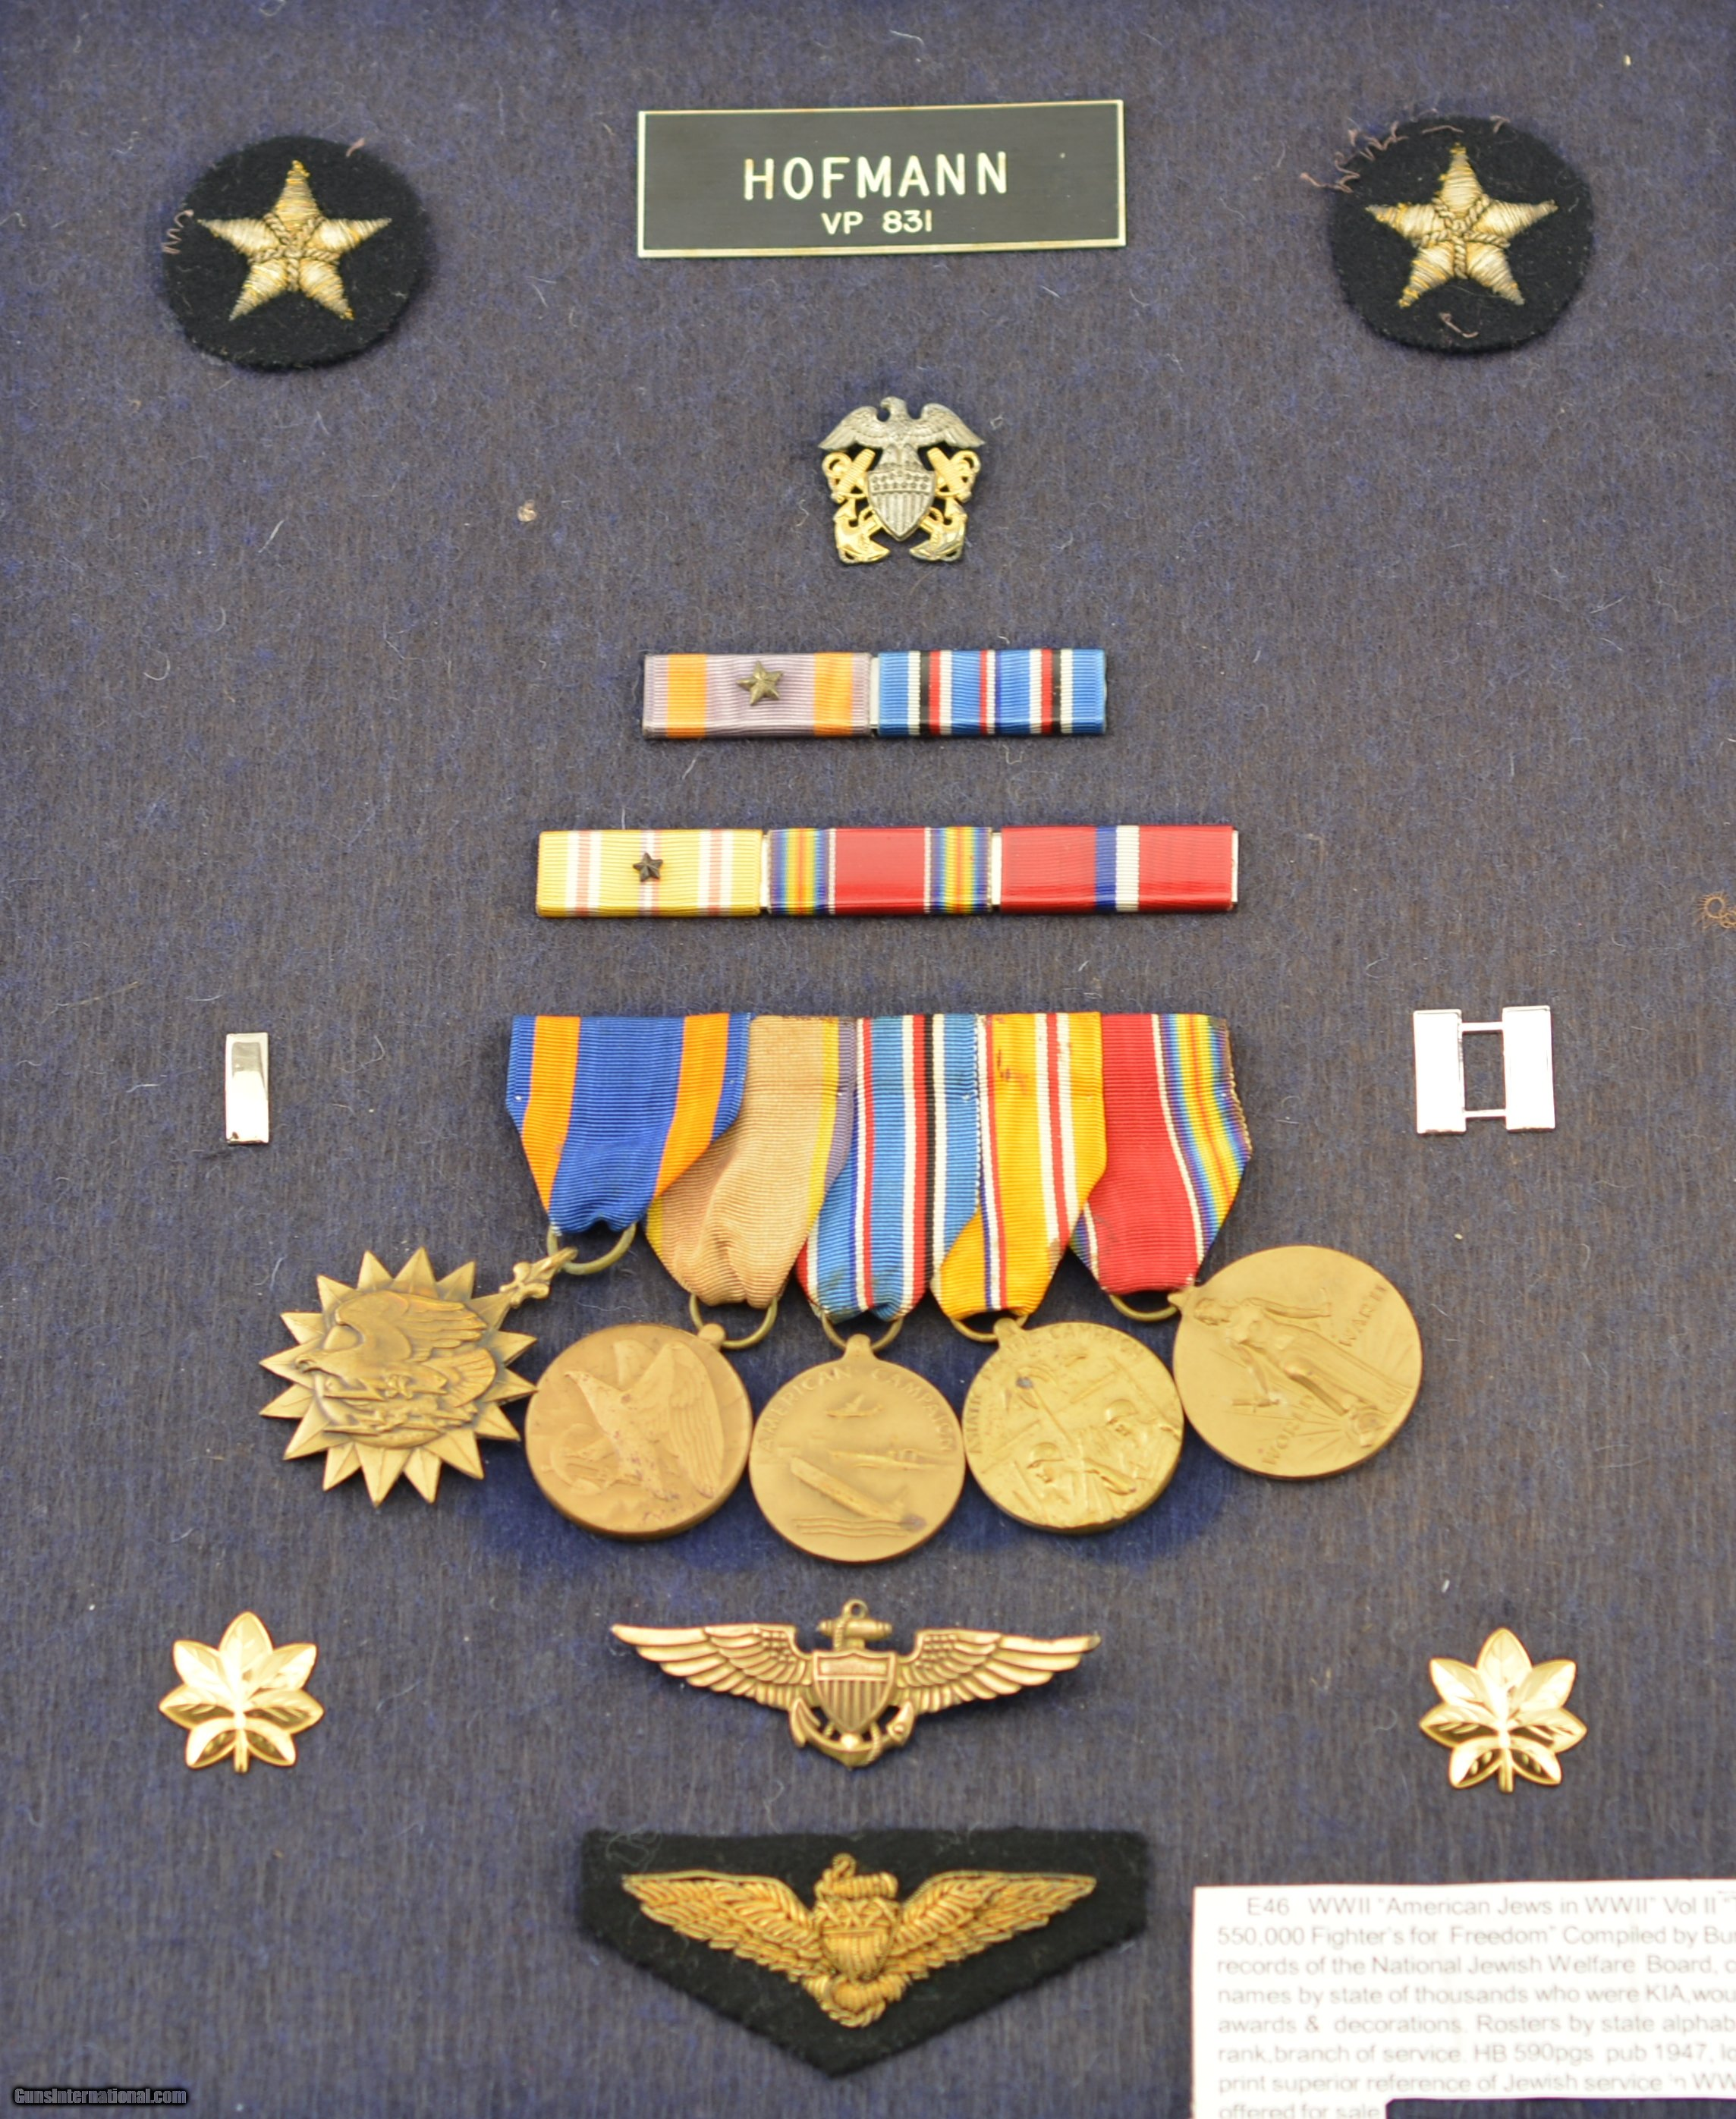 WW2 Jewish Naval Aviator Insignia and Medals Group for sale